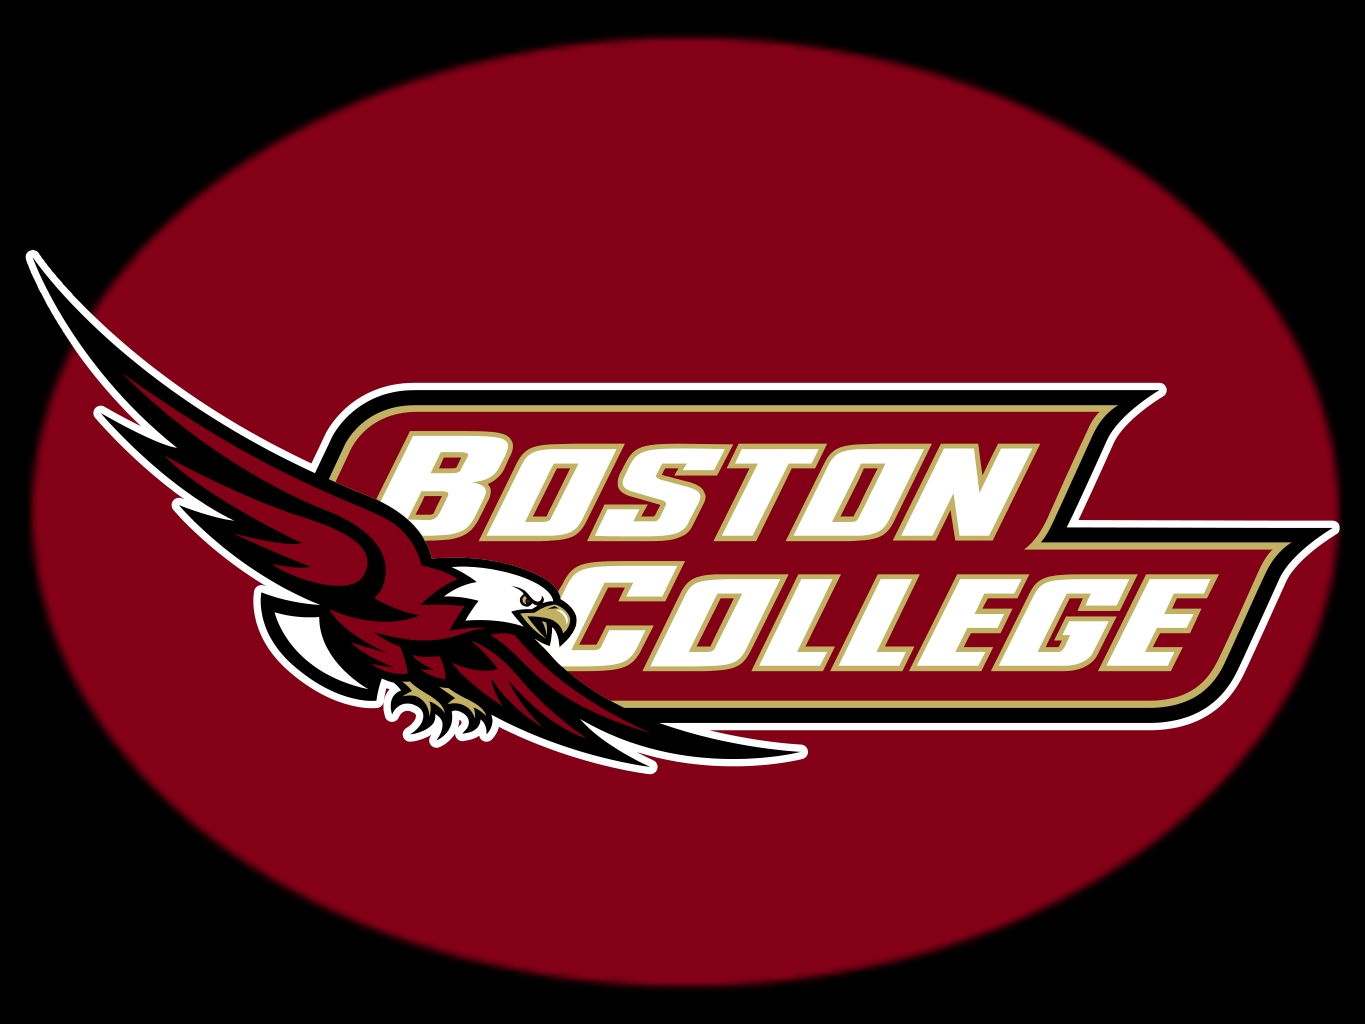 online info university boston college